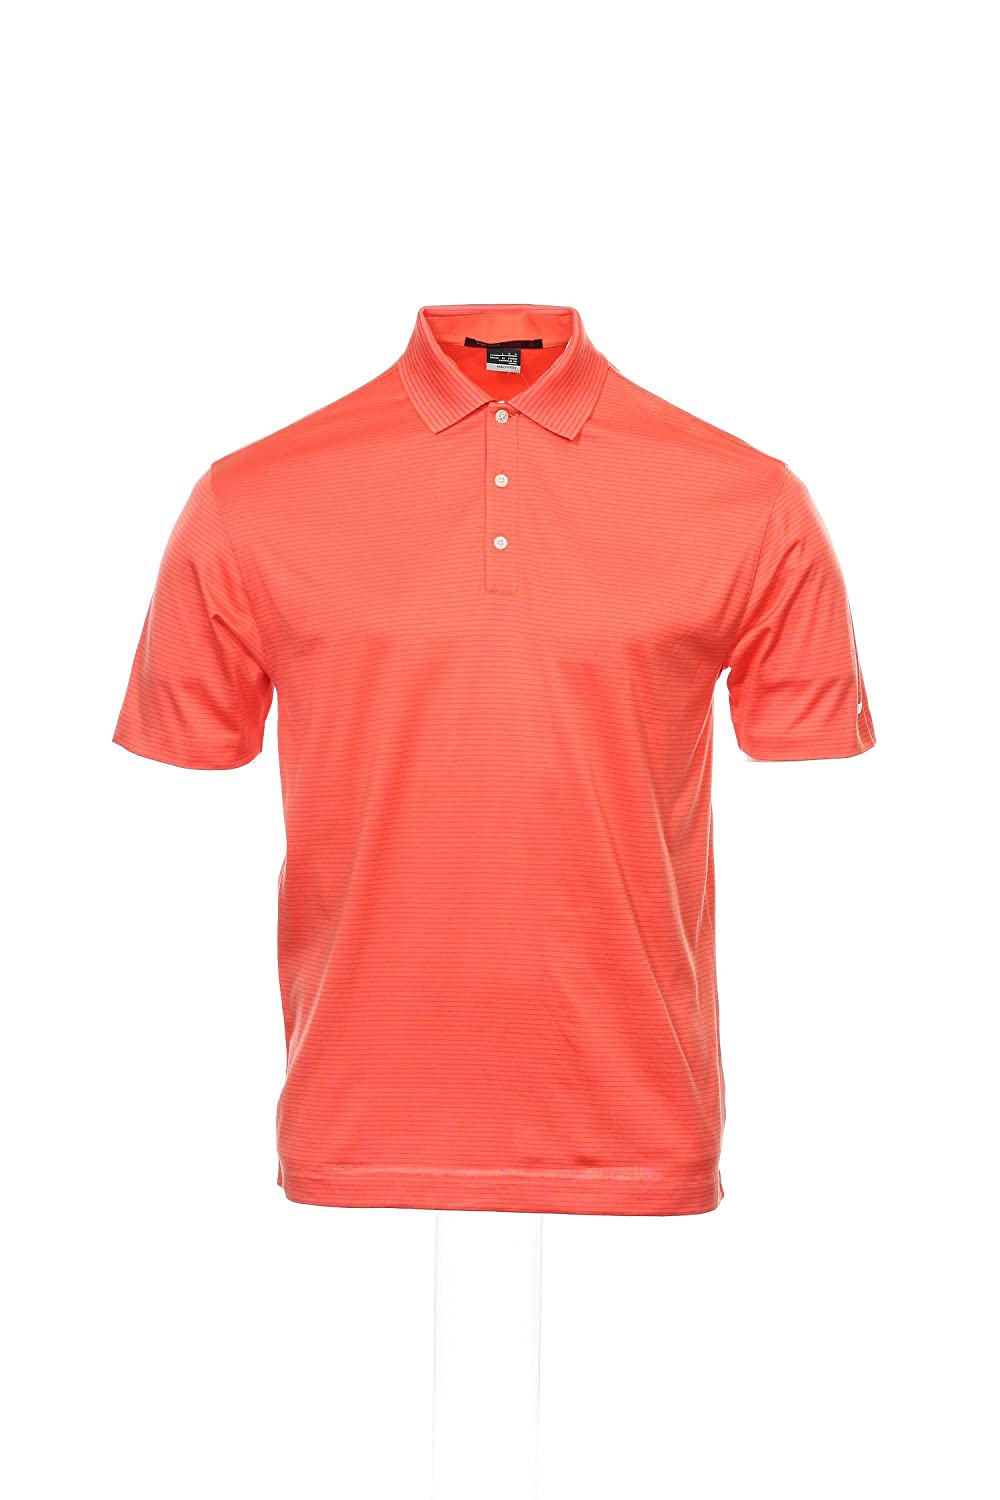 3292f7568 Amazon.com: Tiger Woods Collection by Nike Orange Striped Polo Shirt Golf,  Size Medium: Nike: Sports & Outdoors